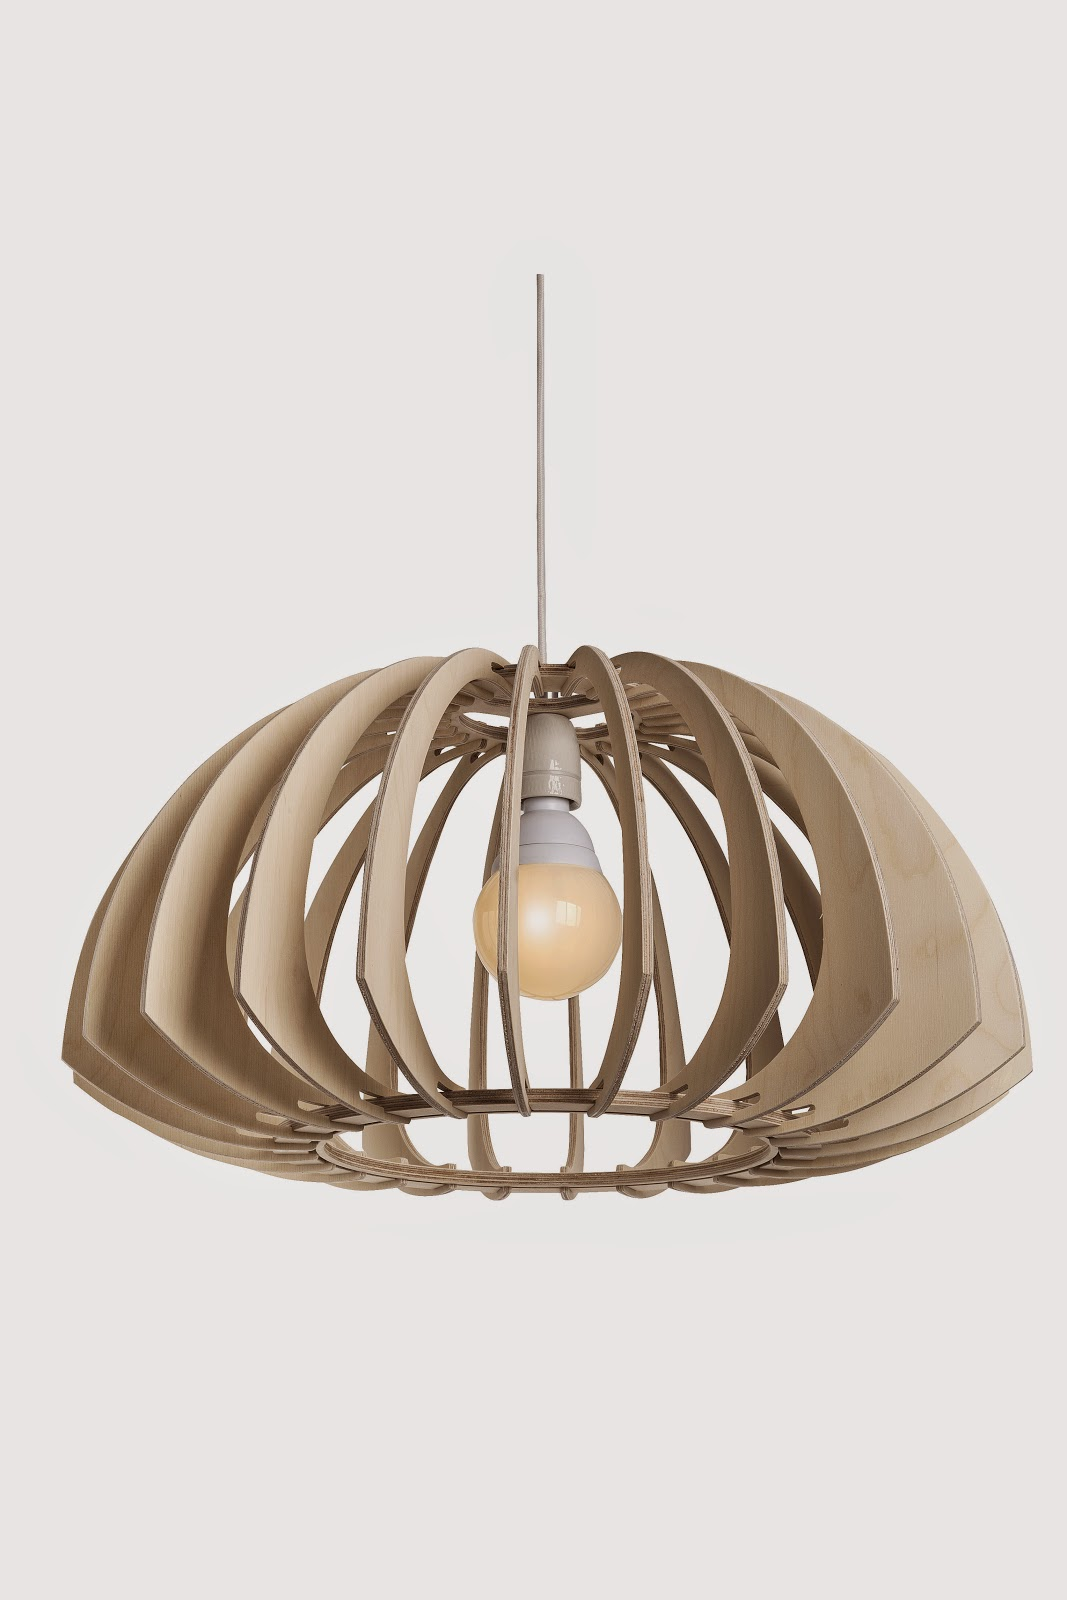 WOOD PENDANT LIGHT FIXTURES - Phases Africa | African ...